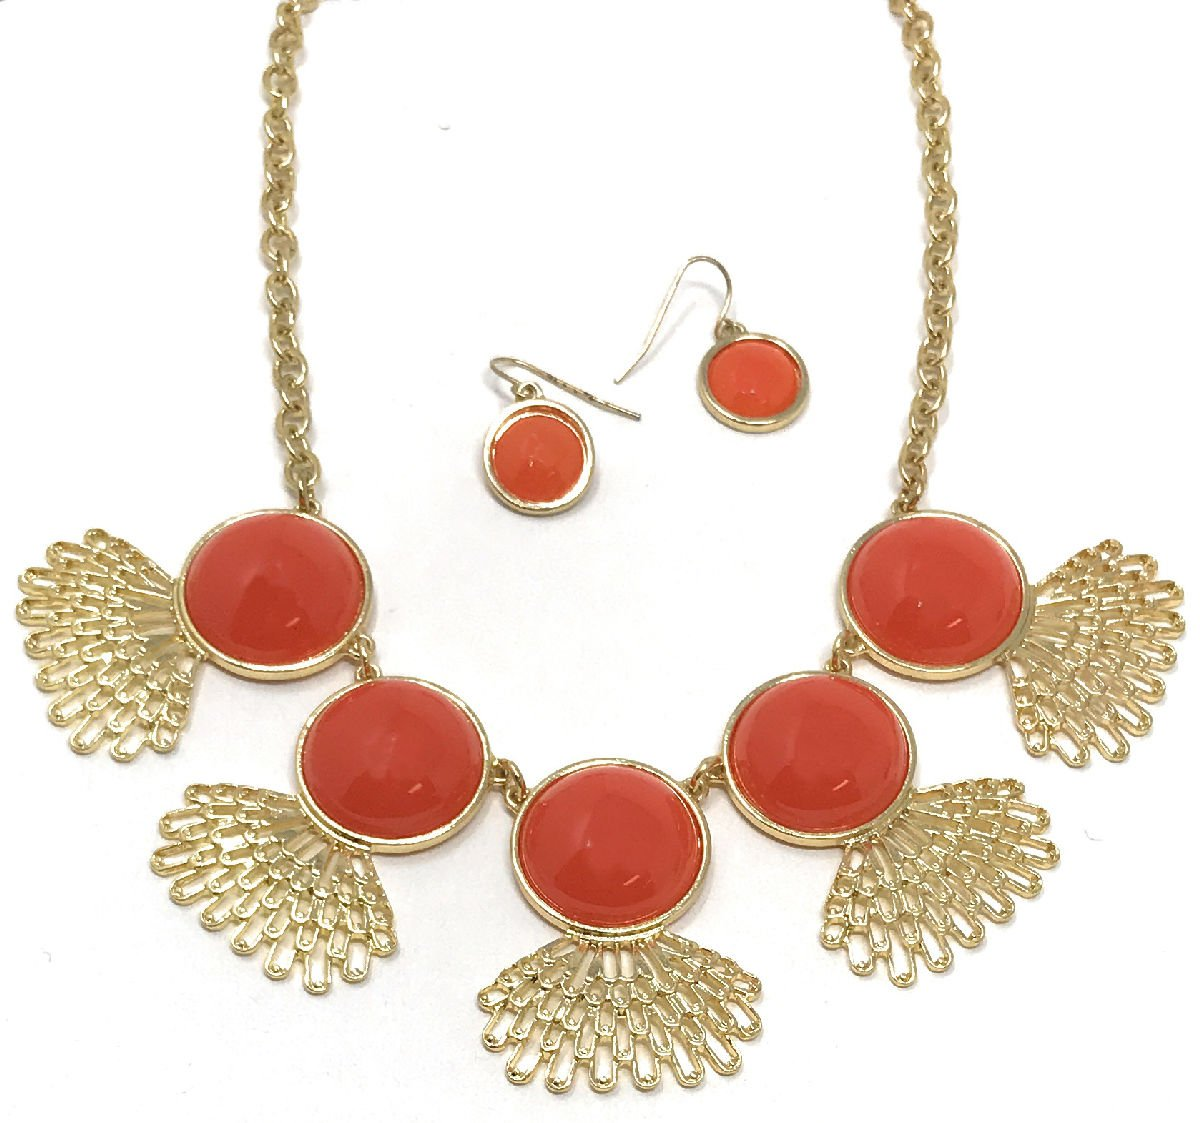 Women's Fashion Peacock Fan Bib Collar Statement Jewelry Earring Necklace Set by Dave's Collections